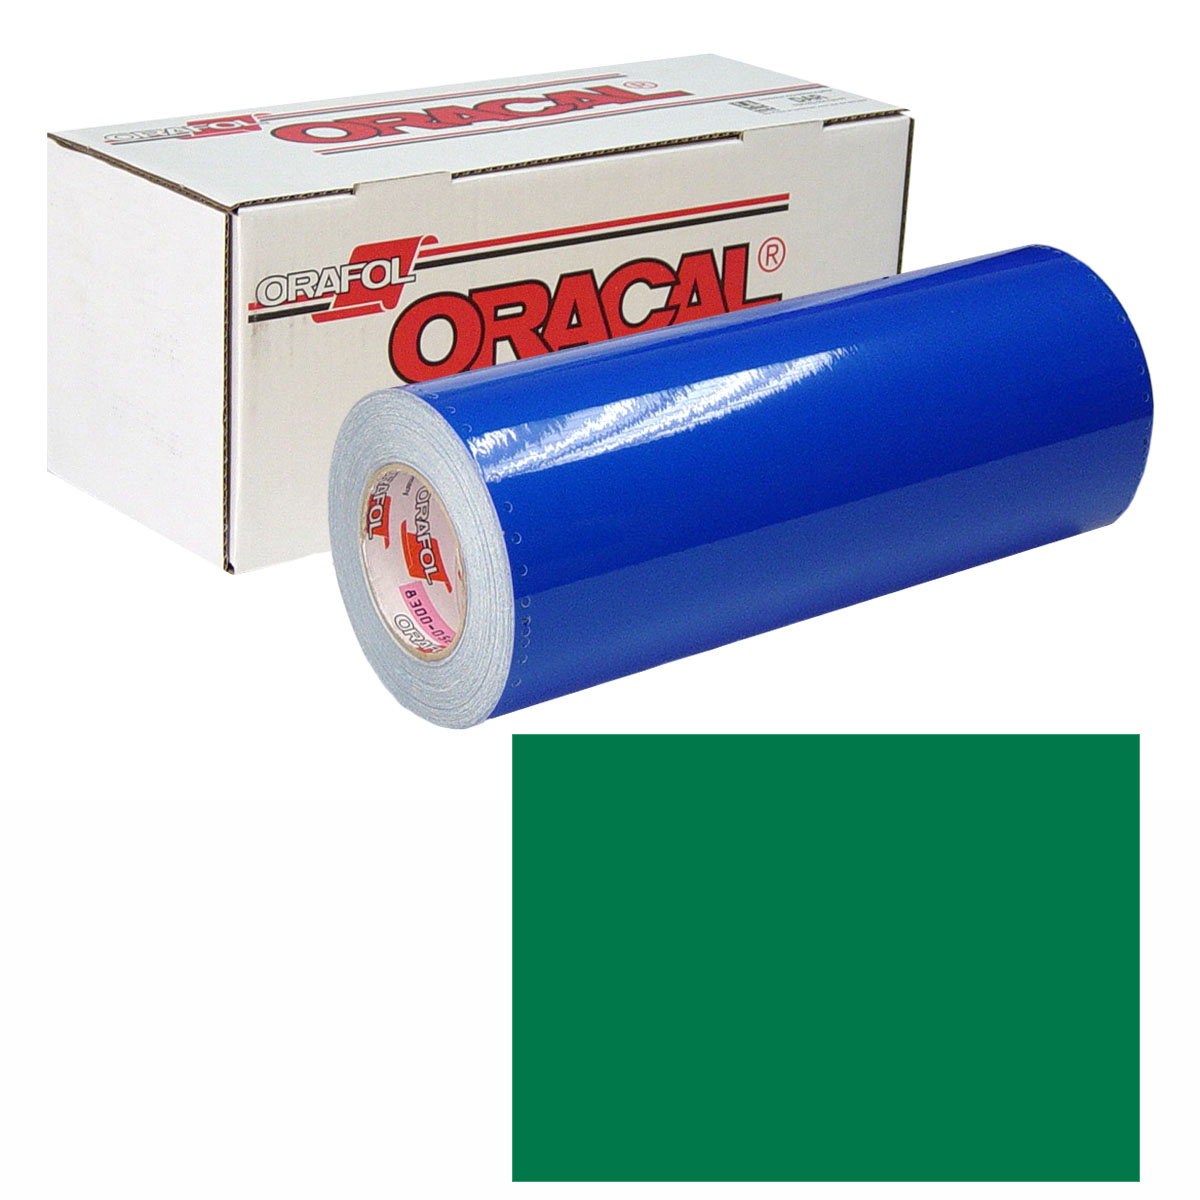 ORACAL 631 Unp 24in X 50yd 061 Green